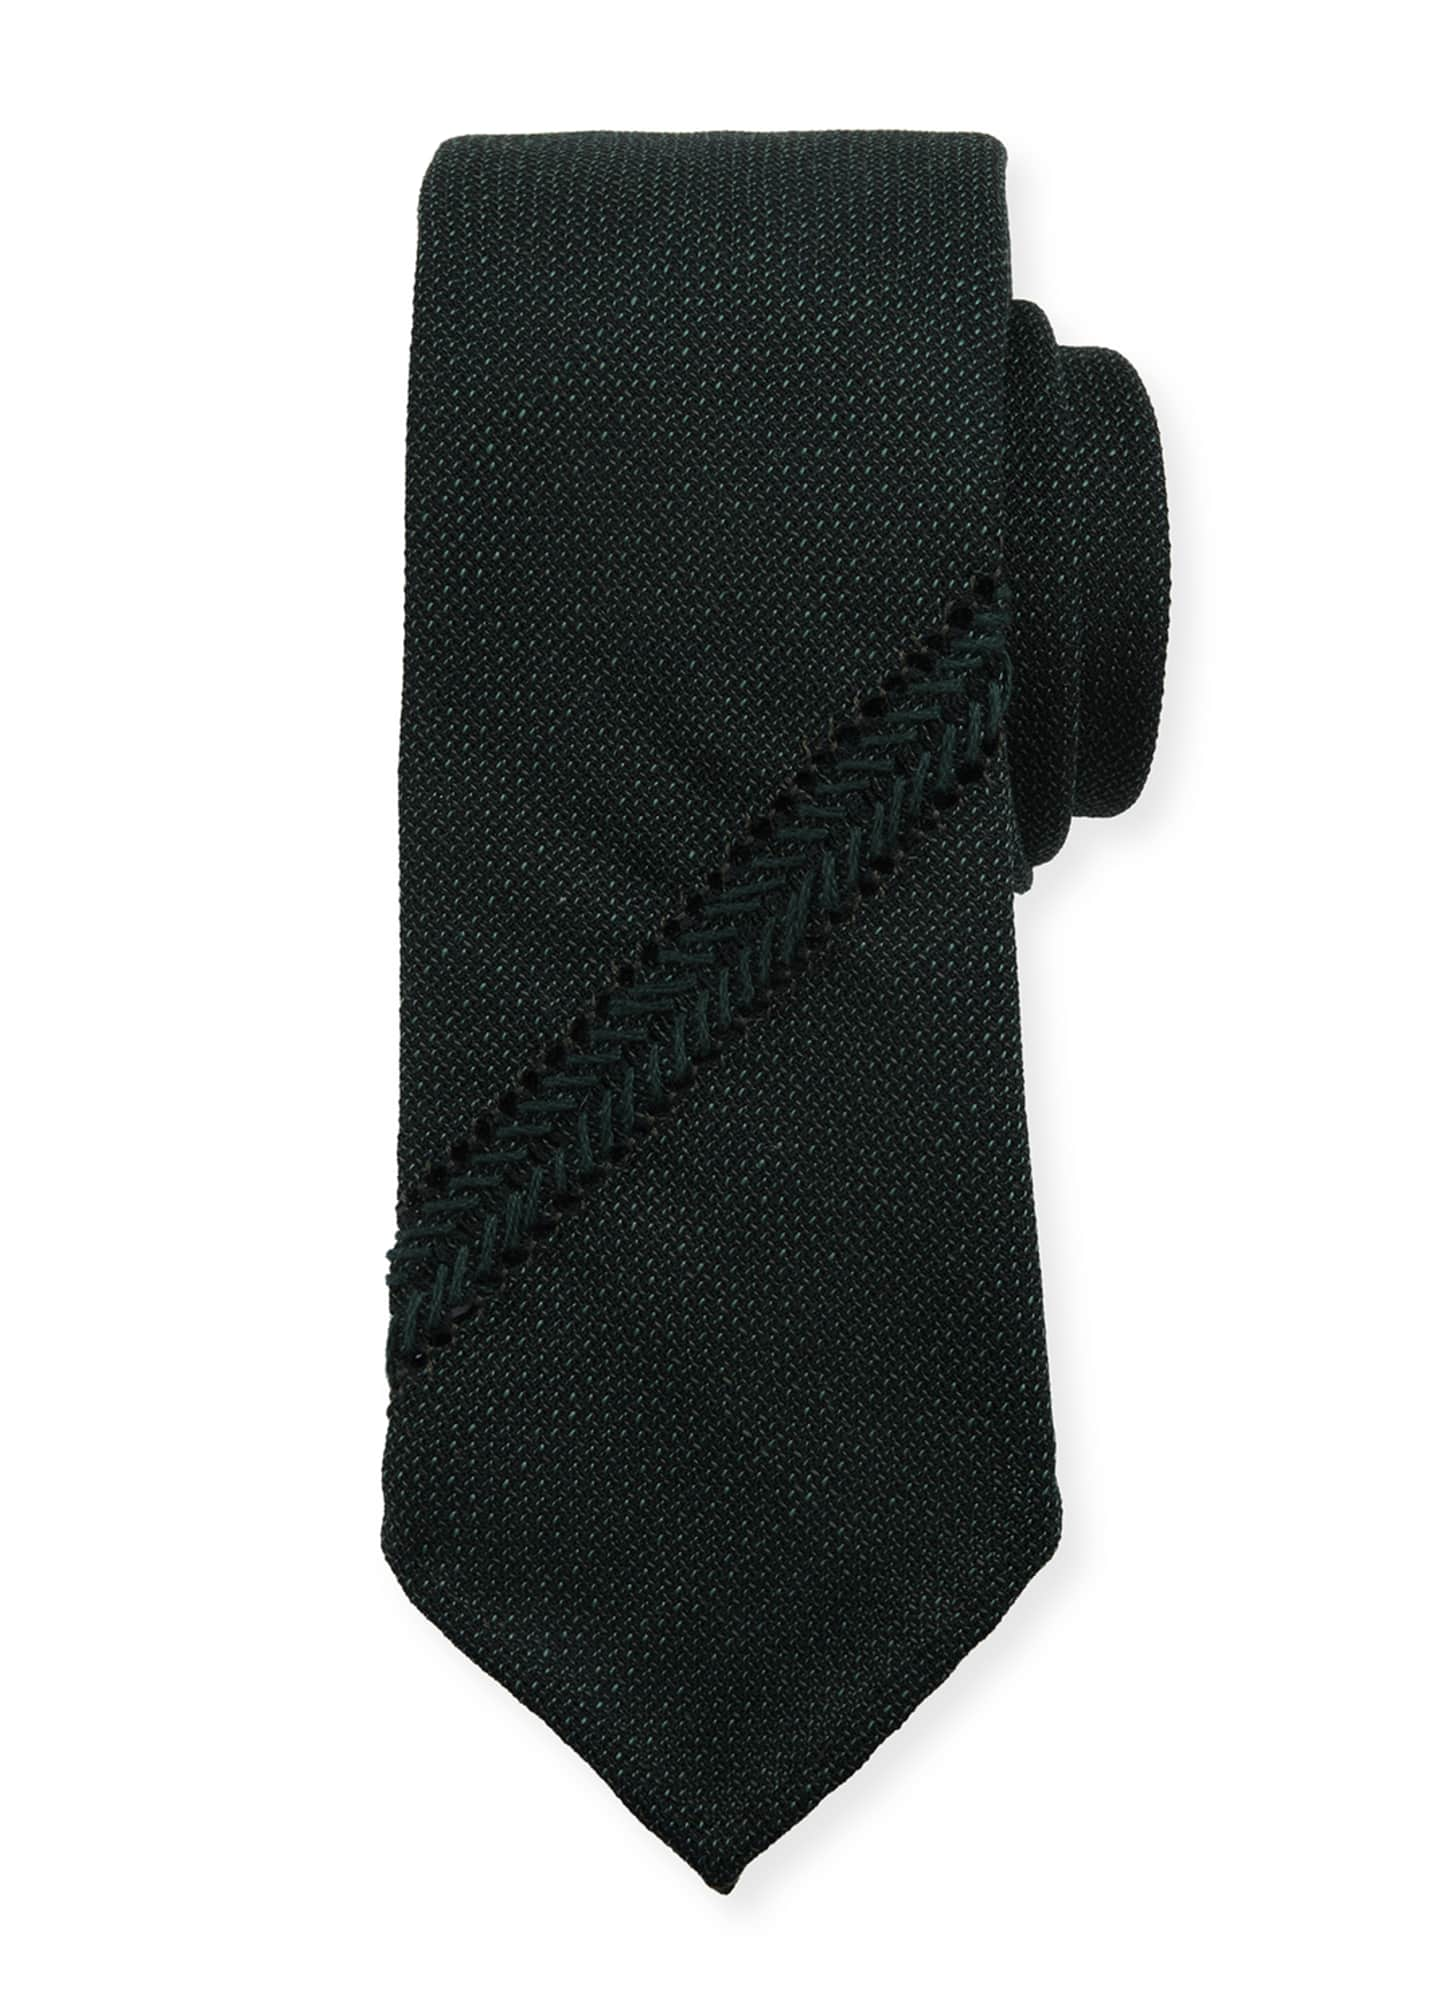 Image 1 of 1: Hopsack Knit Tie w/ Diagonal Stripe, Teal